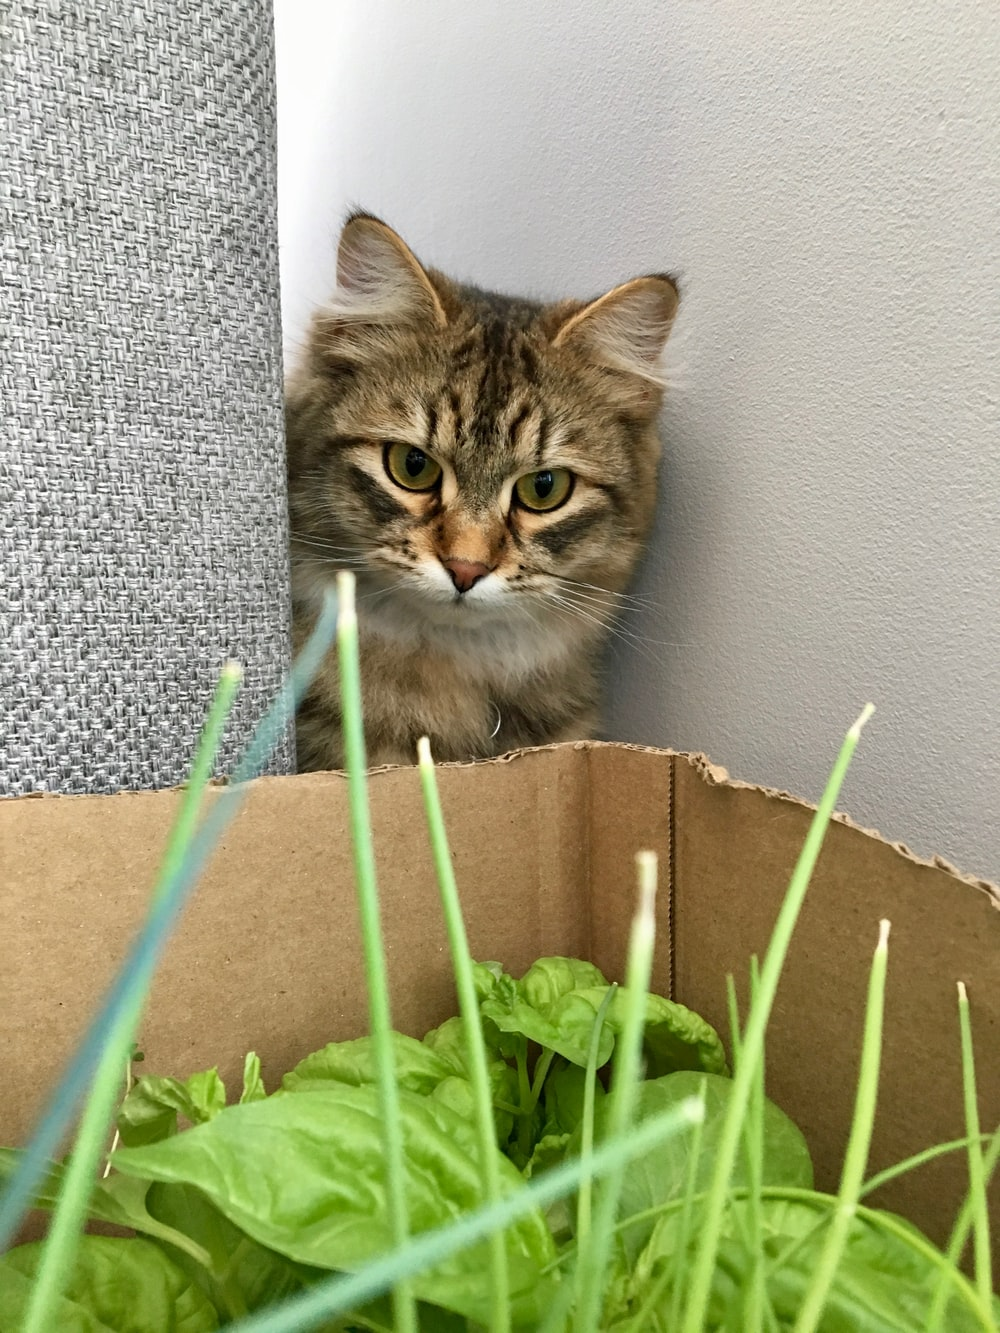 brown tabby cat looking at green leafed plants